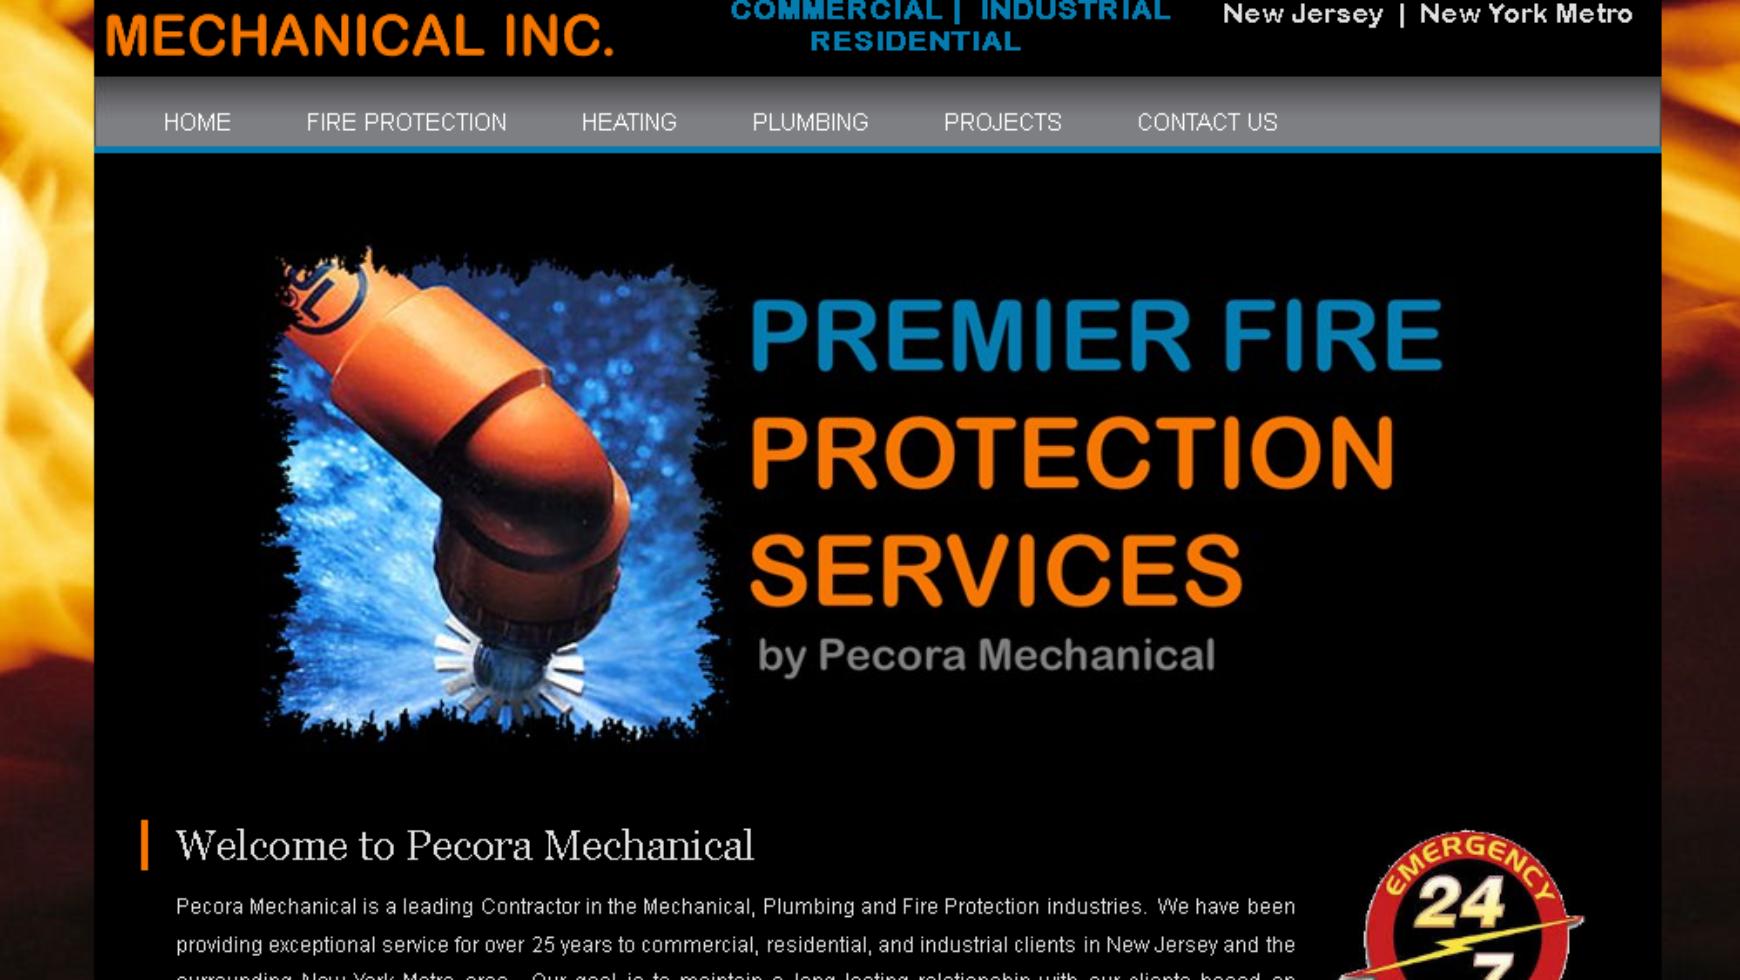 Pecora Mechanical Website – New Jersey